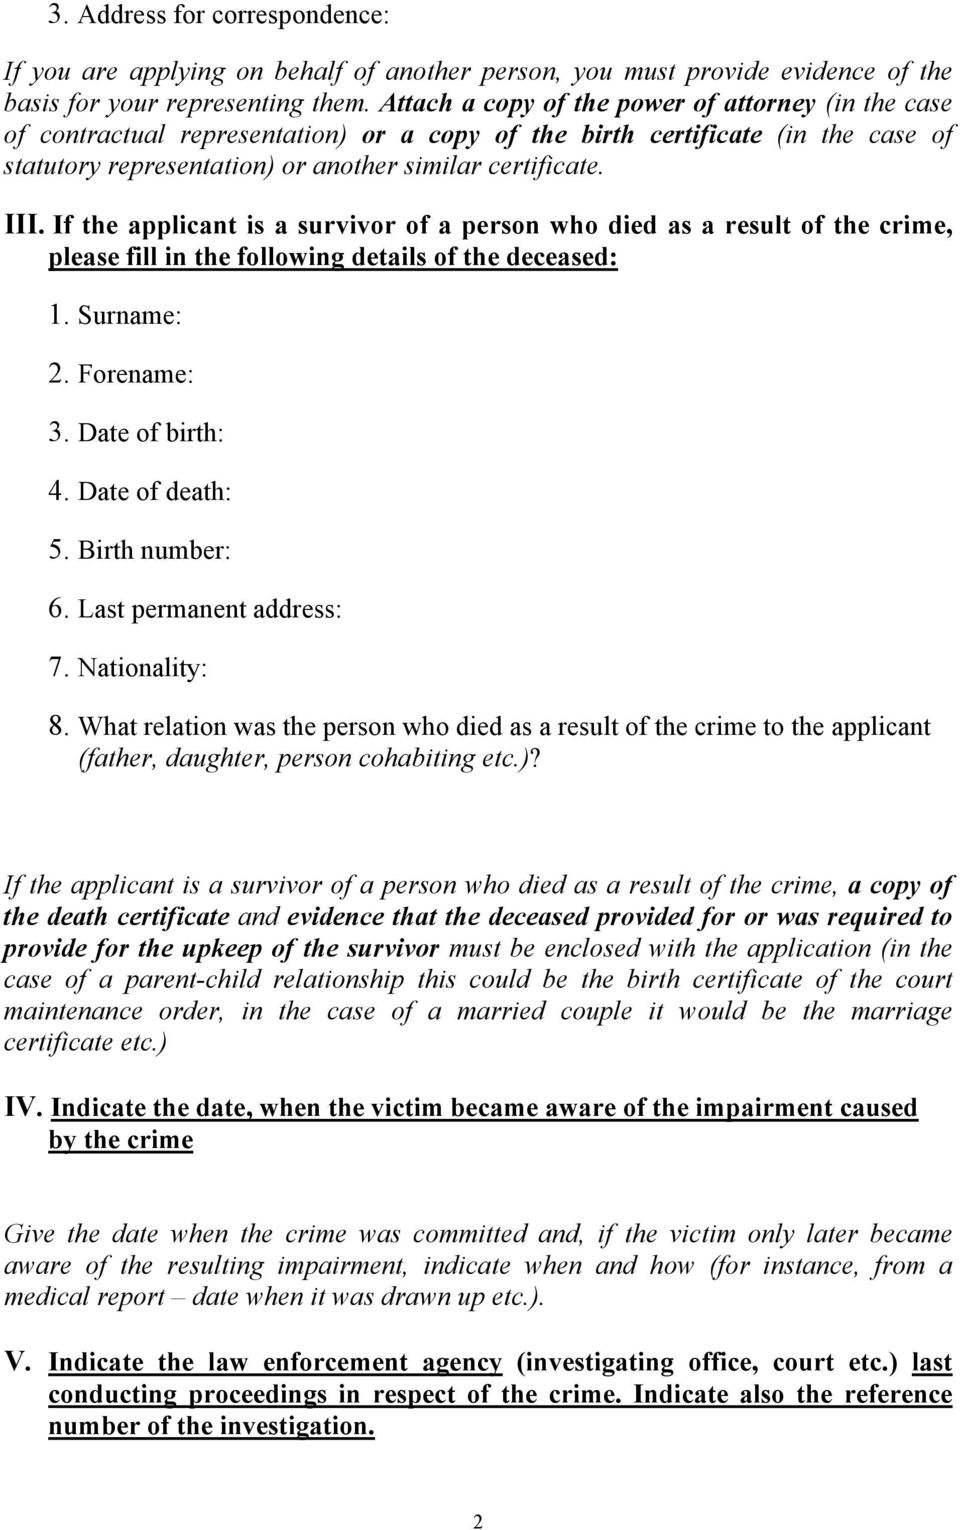 If the applicant is a survivor of a person who died as a result of the crime, please fill in the following details of the deceased: 1. Surname: 2. Forename: 3. Date of birth: 4. Date of death: 5.